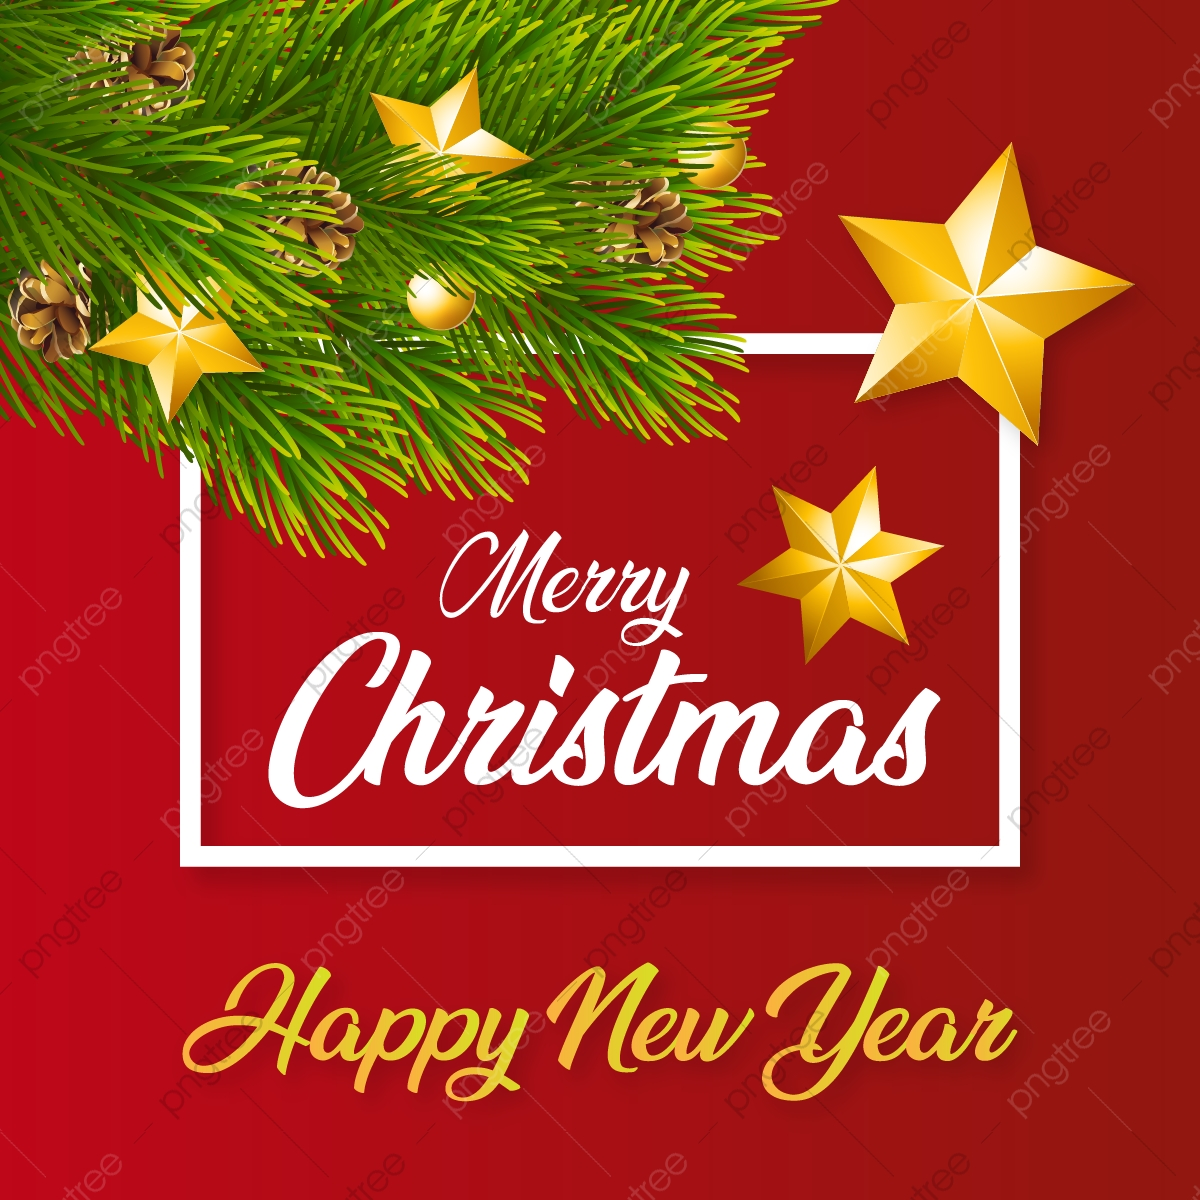 merry christmas happy new year wishes with xmas elements vector christmas merry background png and vector with transparent background for free download https pngtree com freepng merry christmas happy new year wishes with xmas elements vector 3728706 html